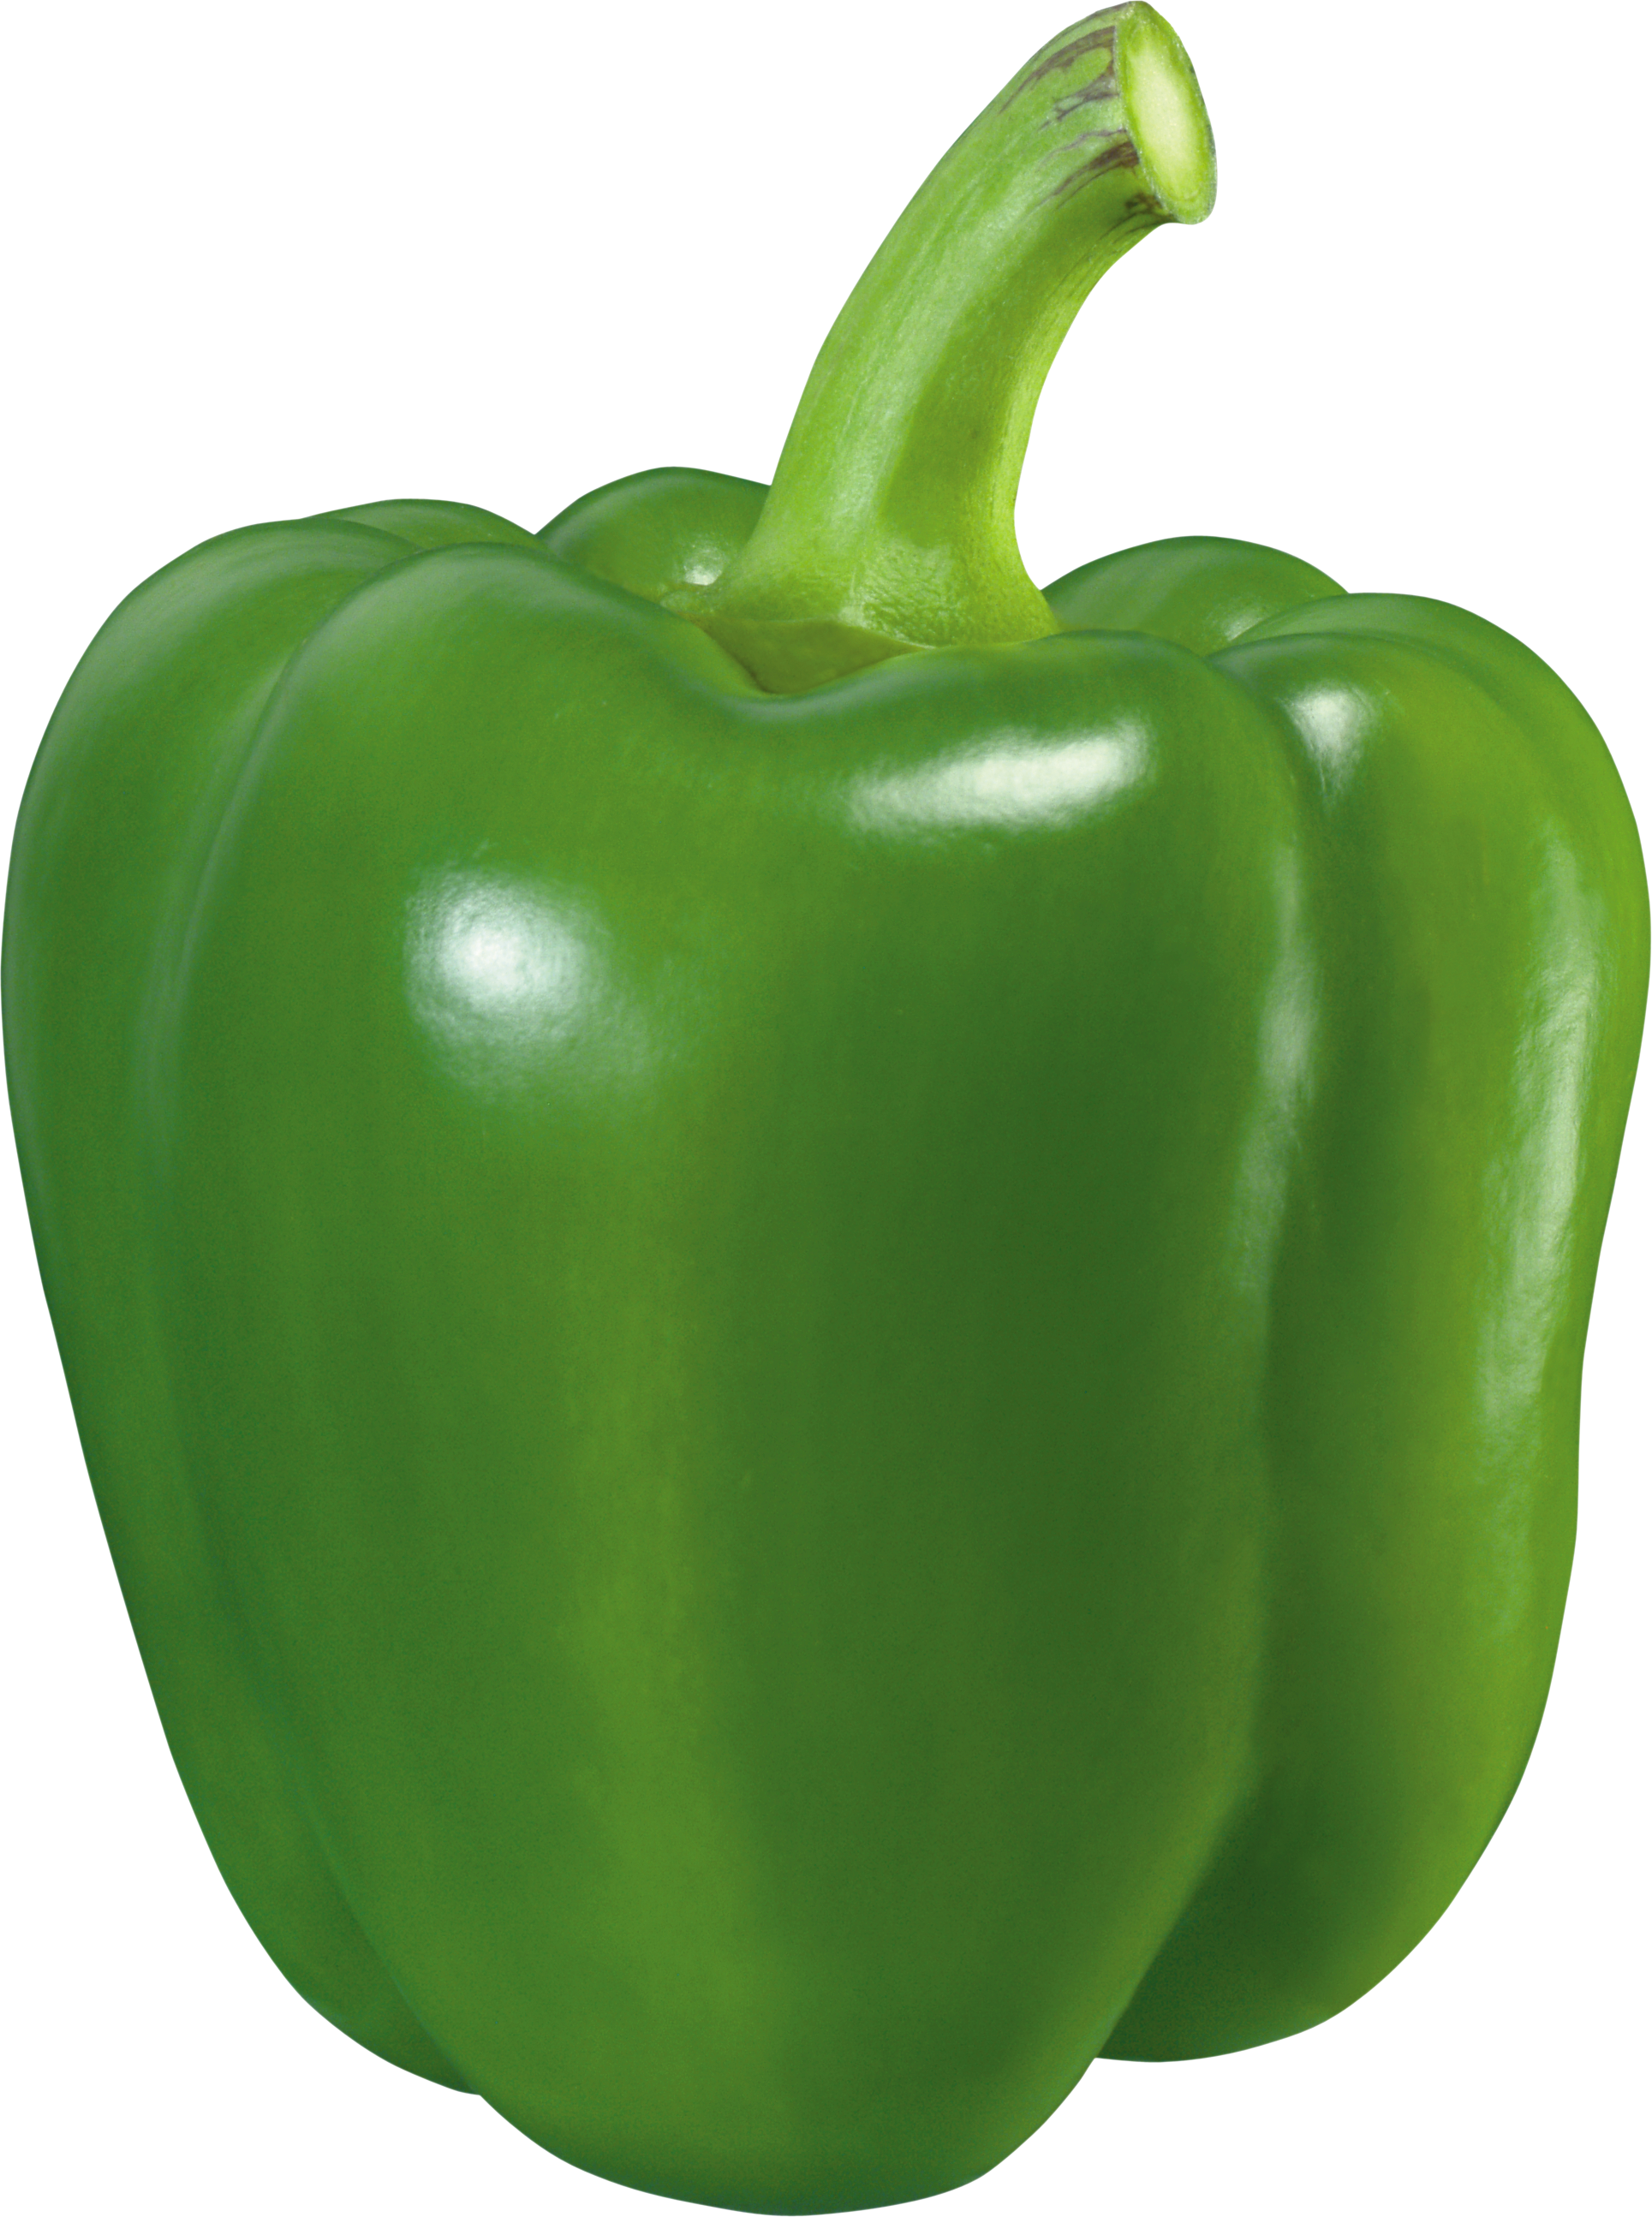 Peppers clipart two. Green bell pepper five